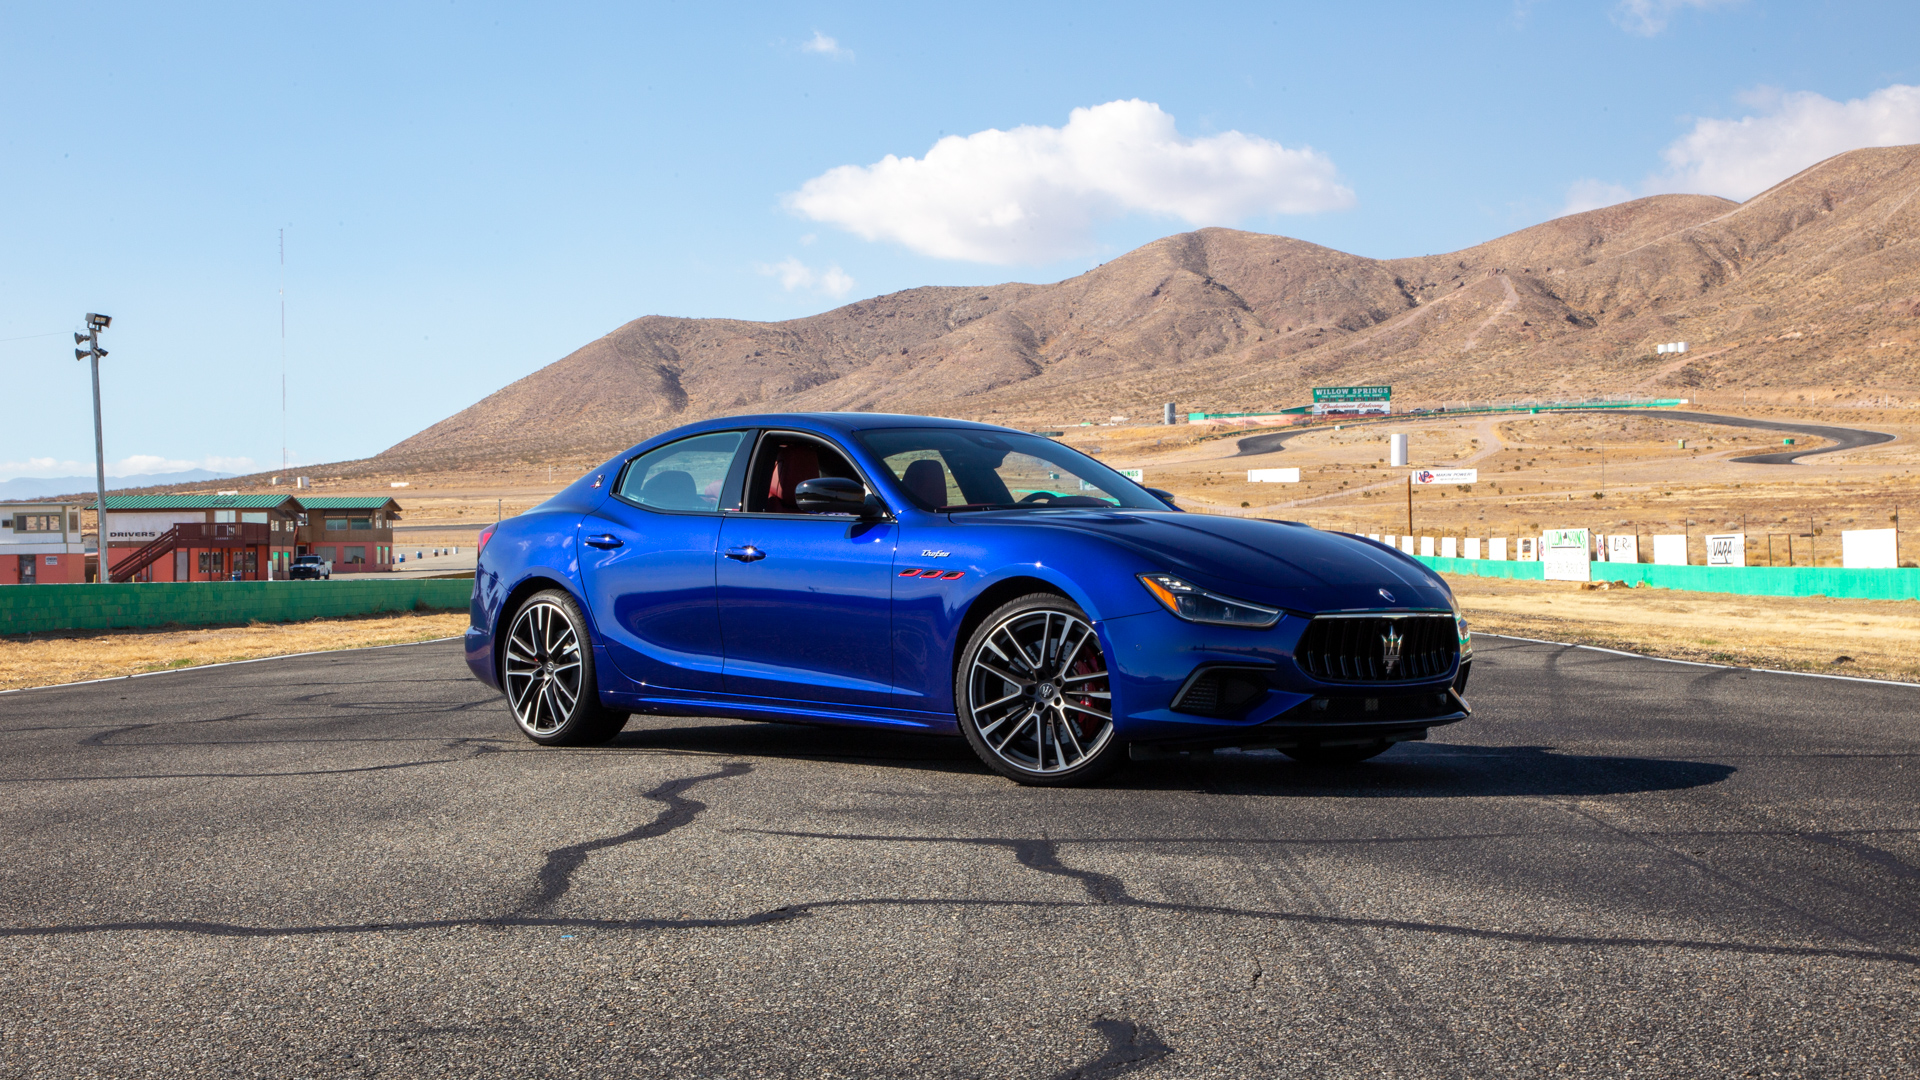 first-drive-review:-2021-maserati-ghibli-trofeo-adds-substance-to-style